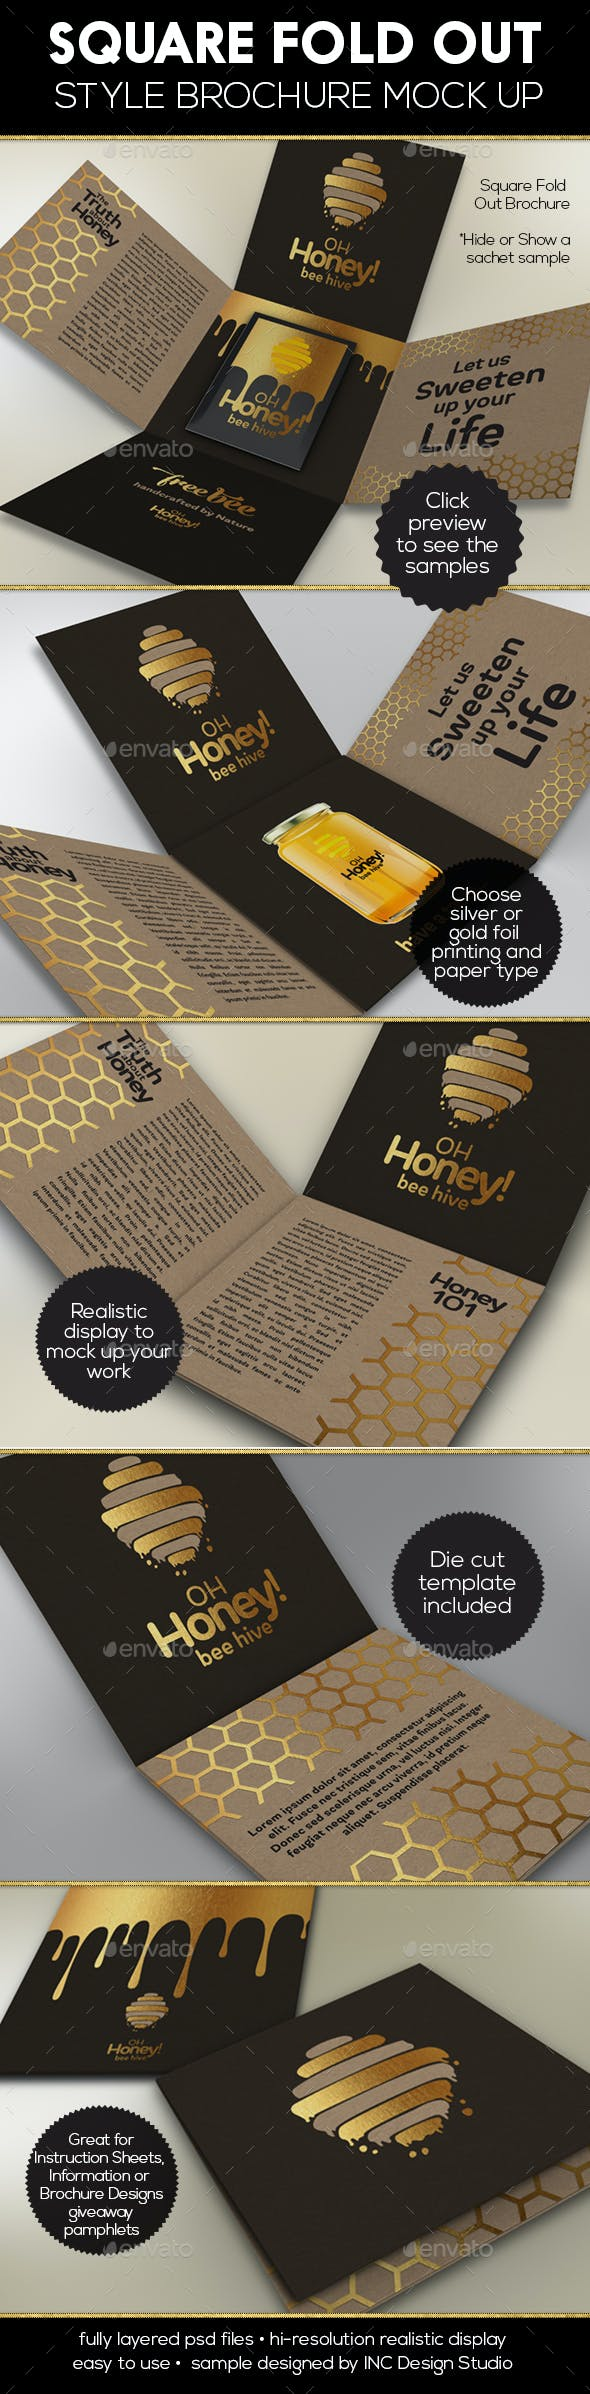 square fold out style brochure by ina717 graphicriver